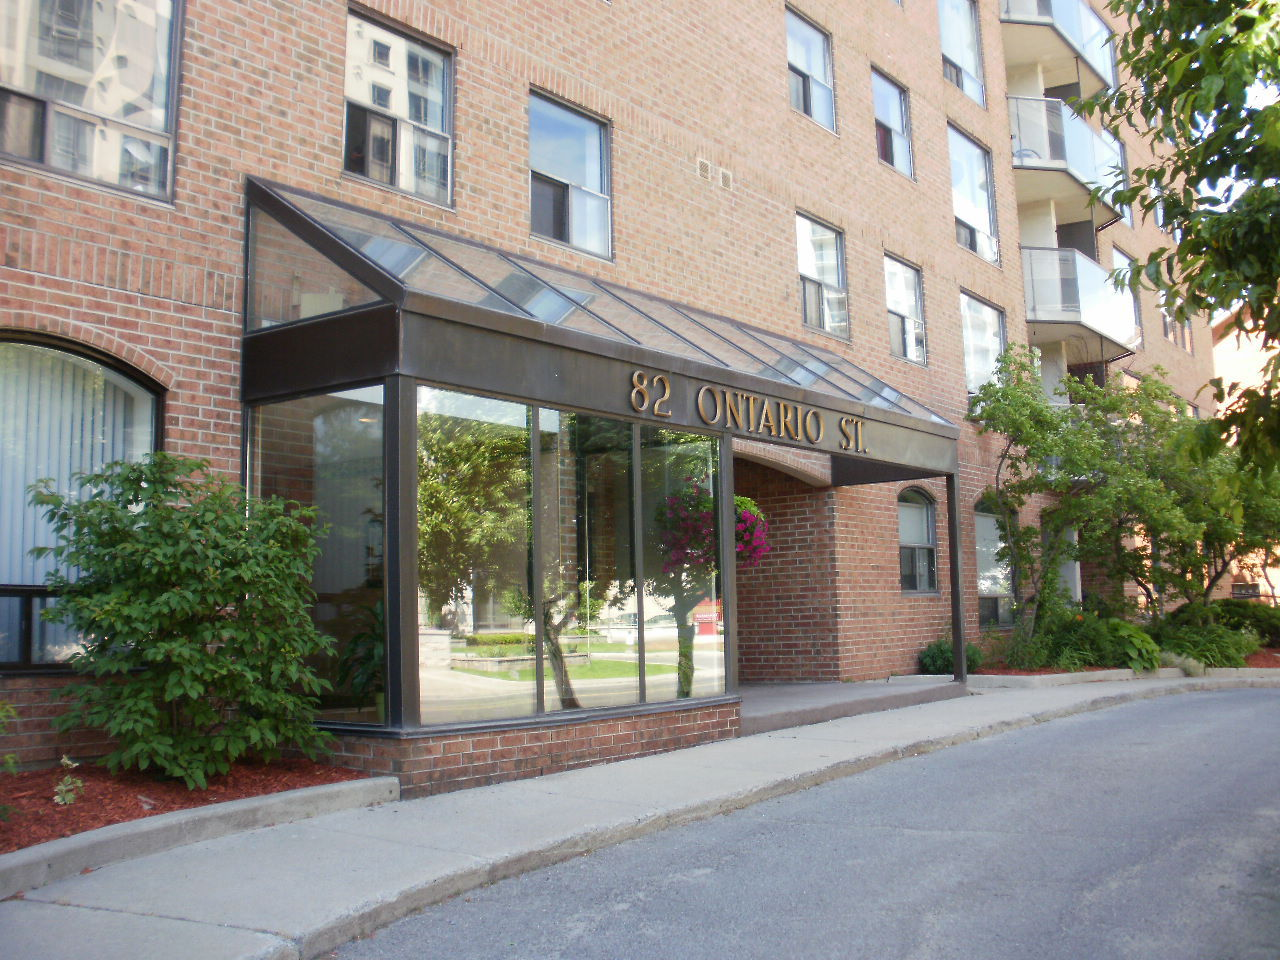 Downtown 82 Ontario St 2 bedroom $1450 plus electric